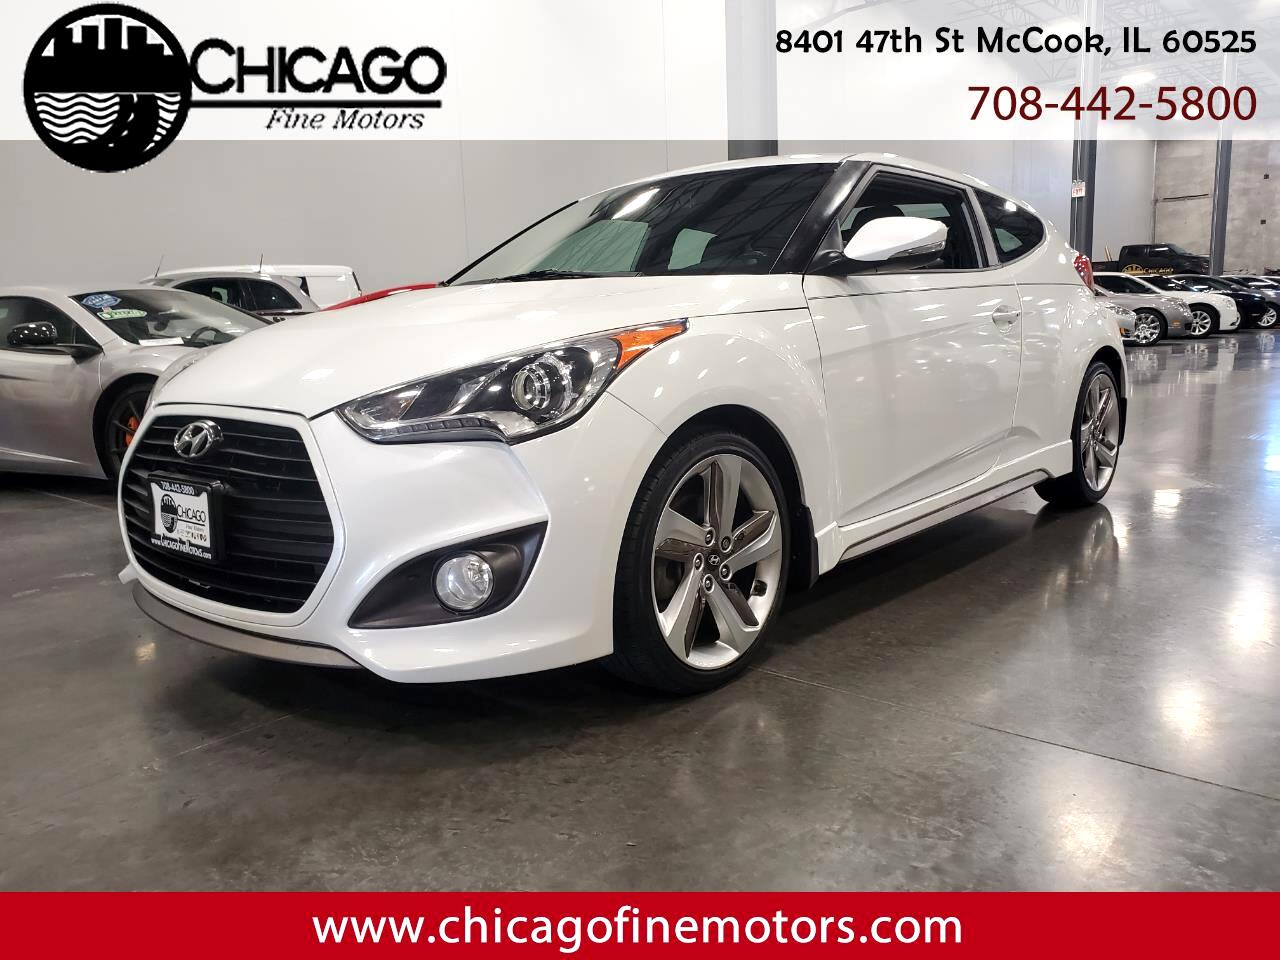 Used 2013 Hyundai Veloster Turbo For Sale In Mccook Il 60525